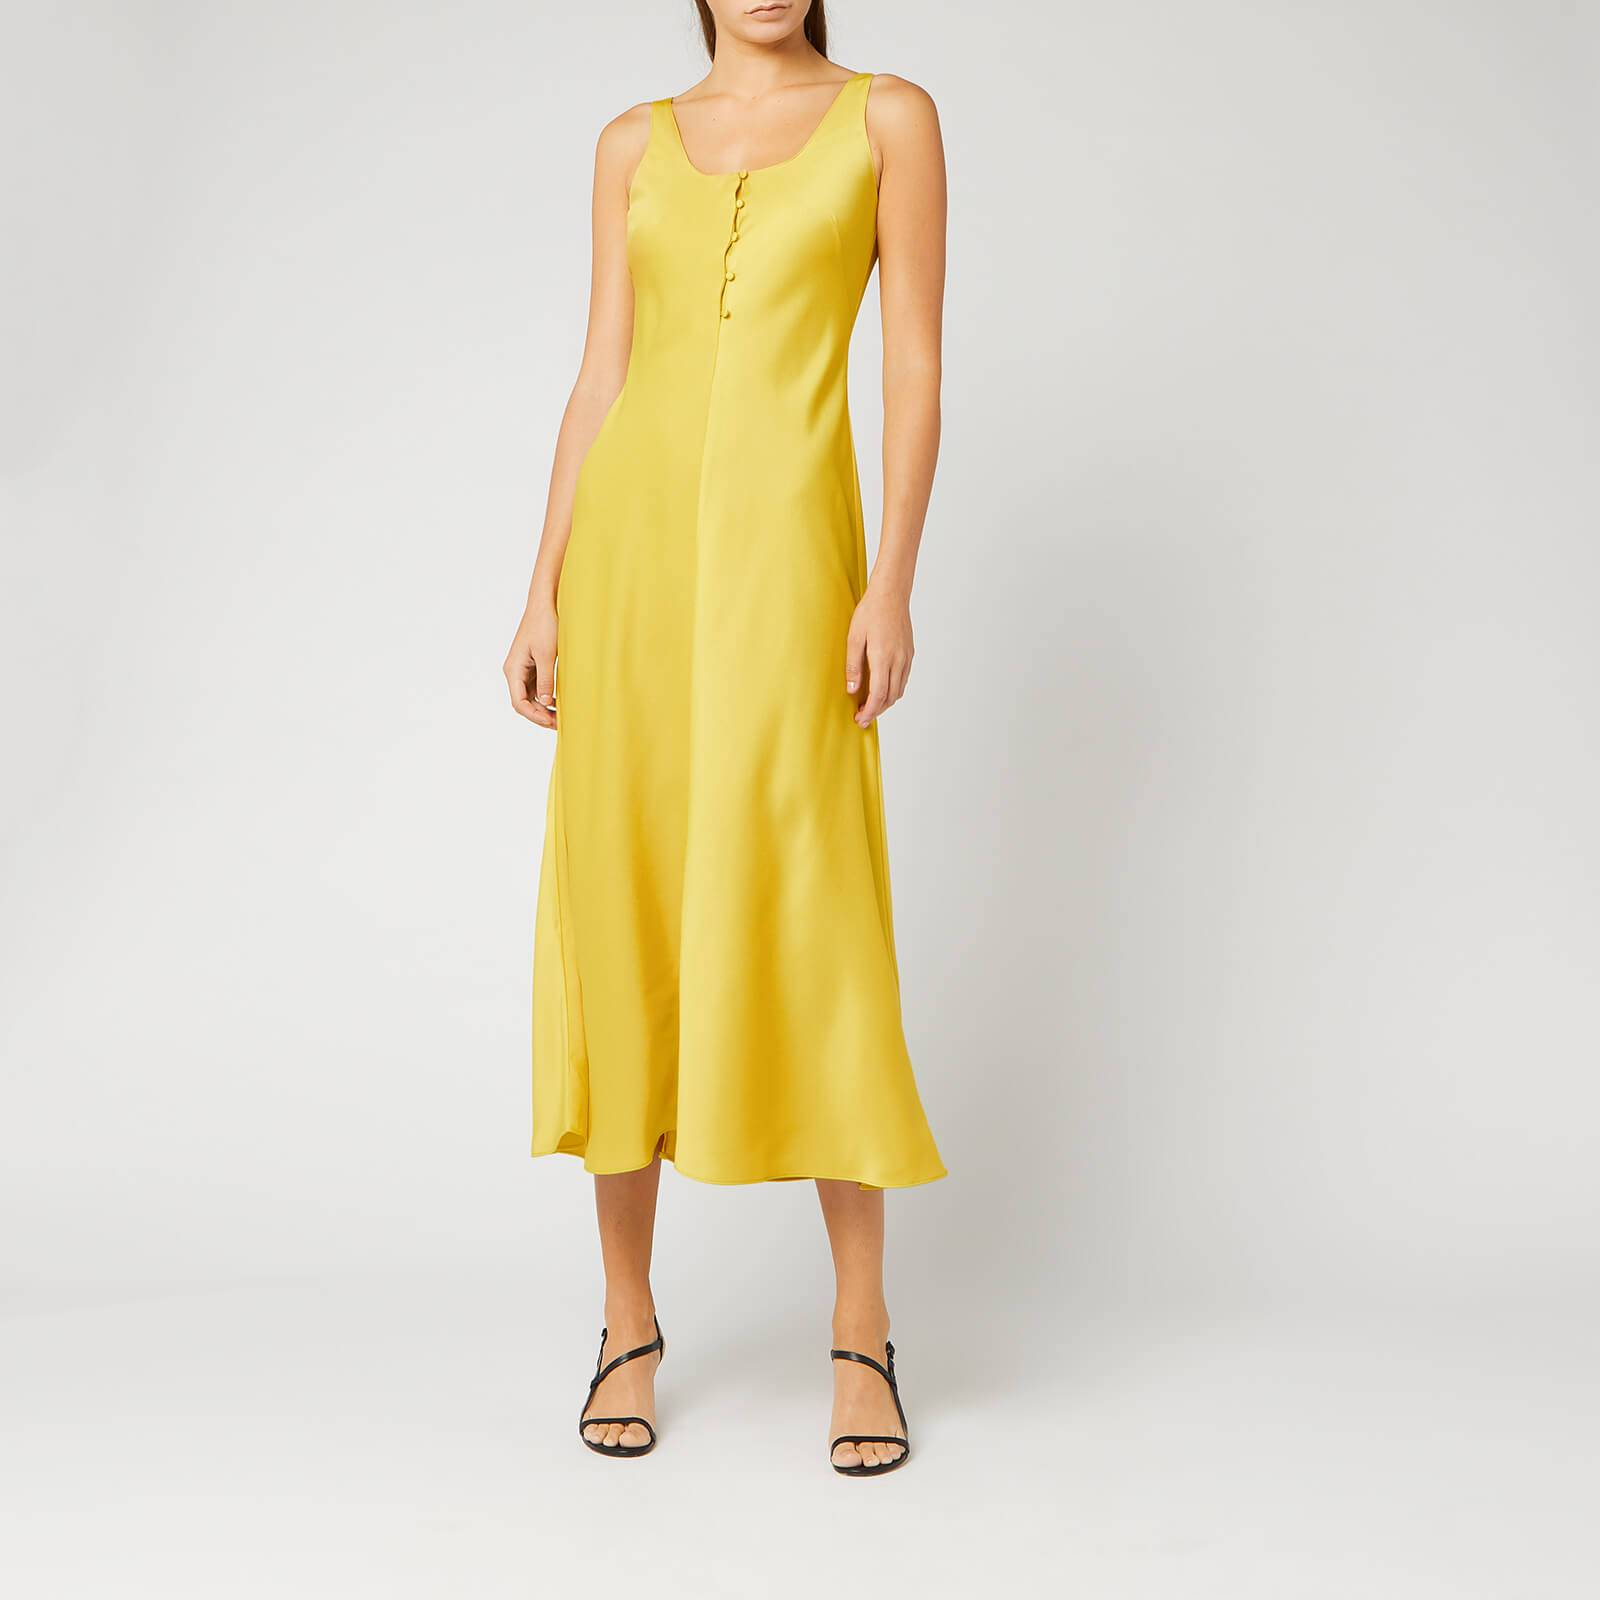 Whistles Women's Pippa Satin Slip Dress - Yellow - UK 12 - Yellow